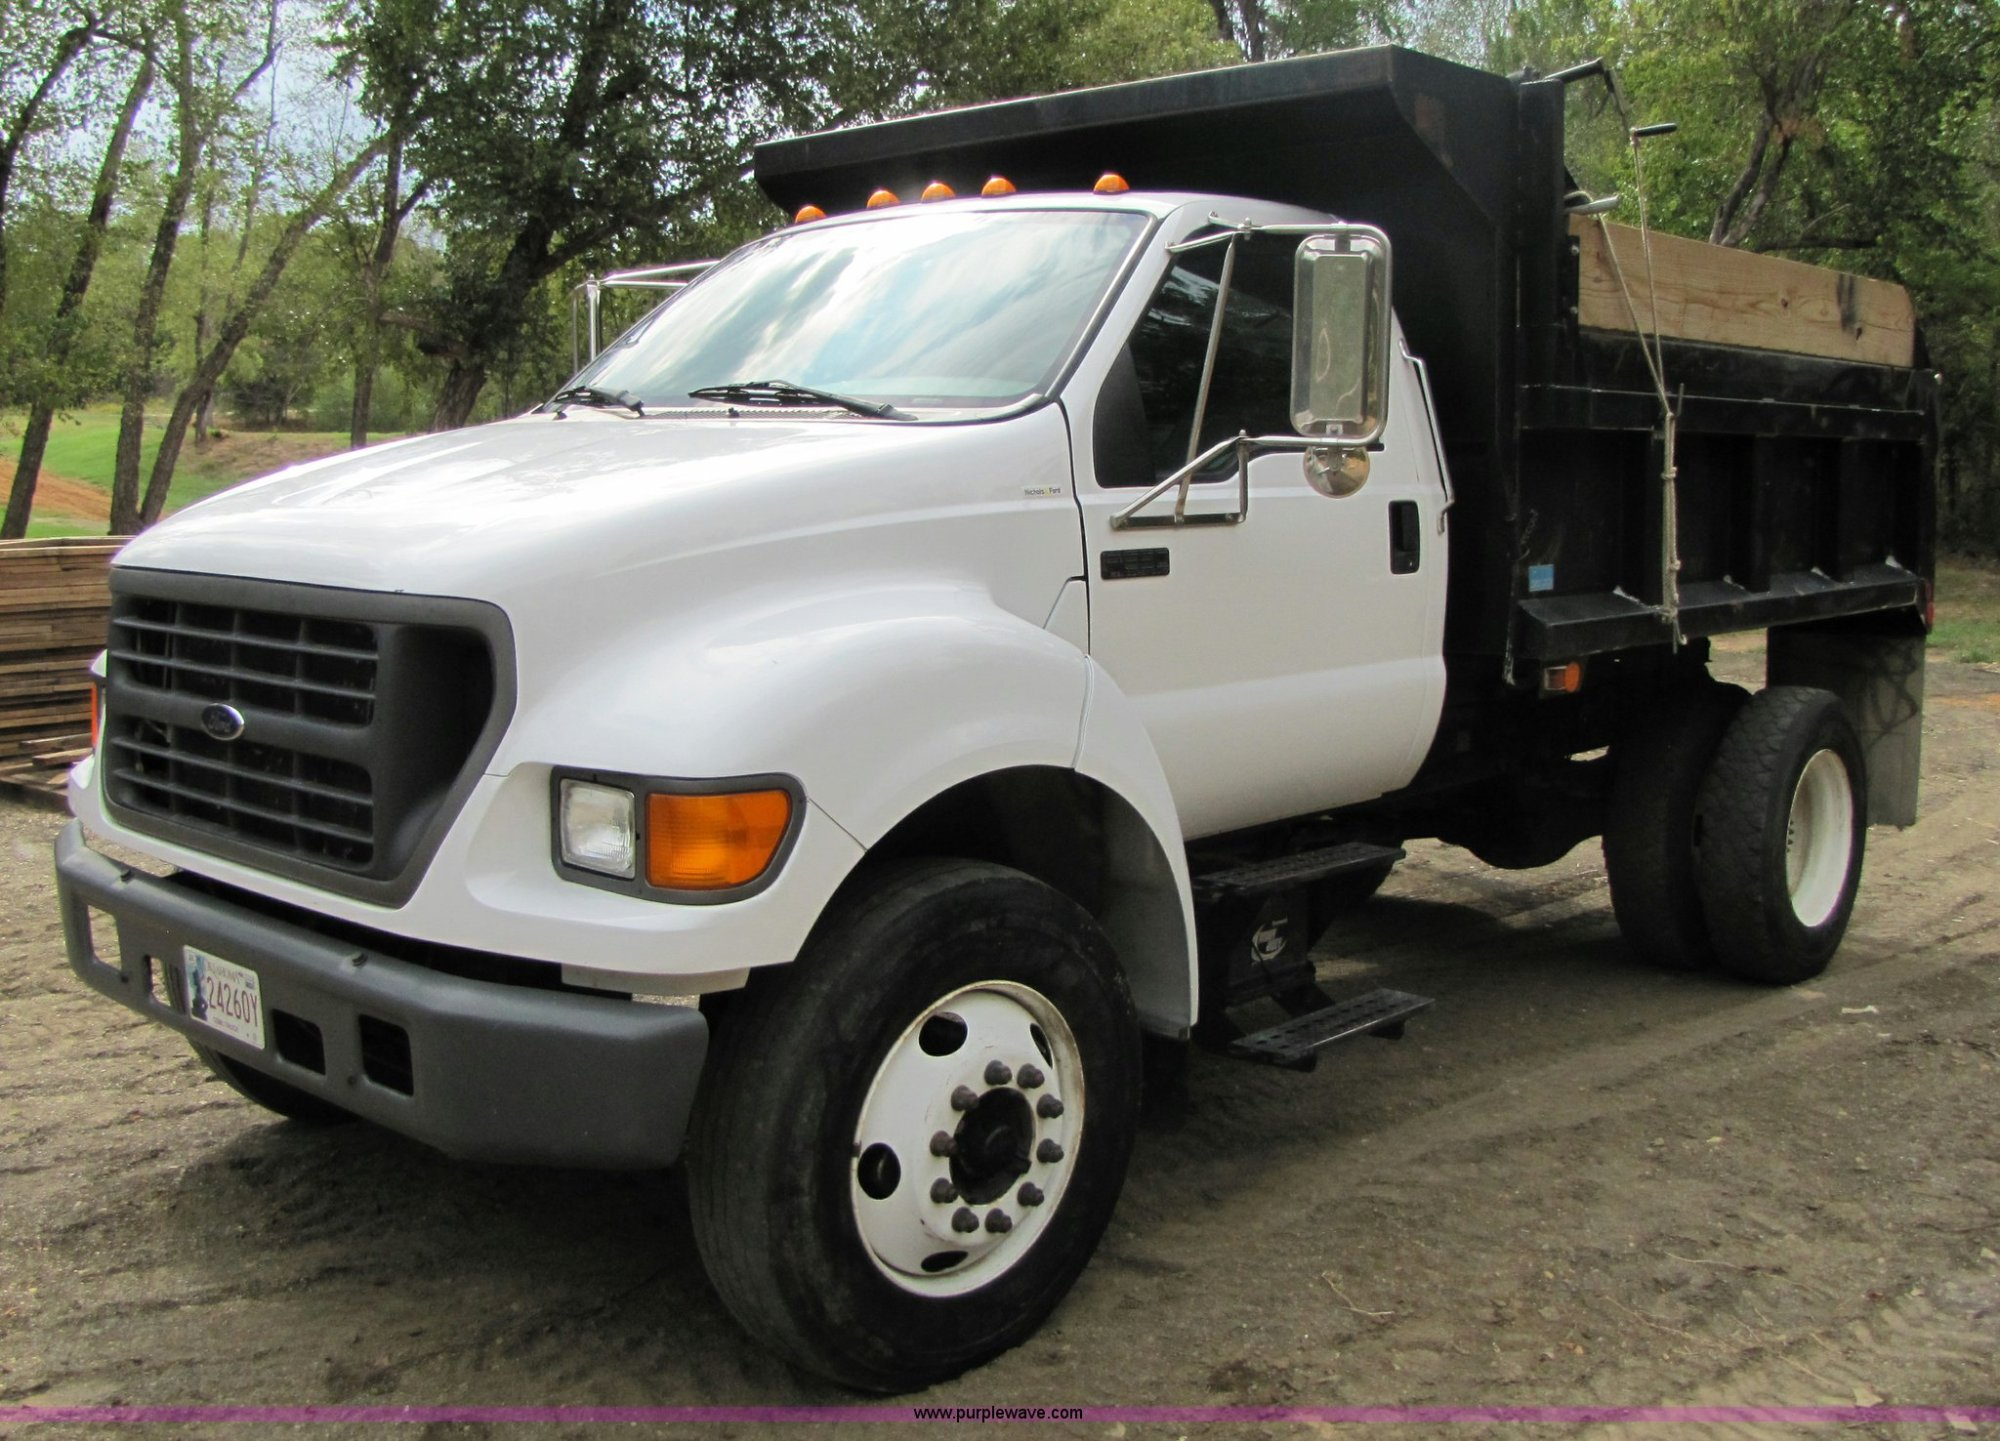 hight resolution of a4640 image for item a4640 2003 ford f650 super duty dump truck